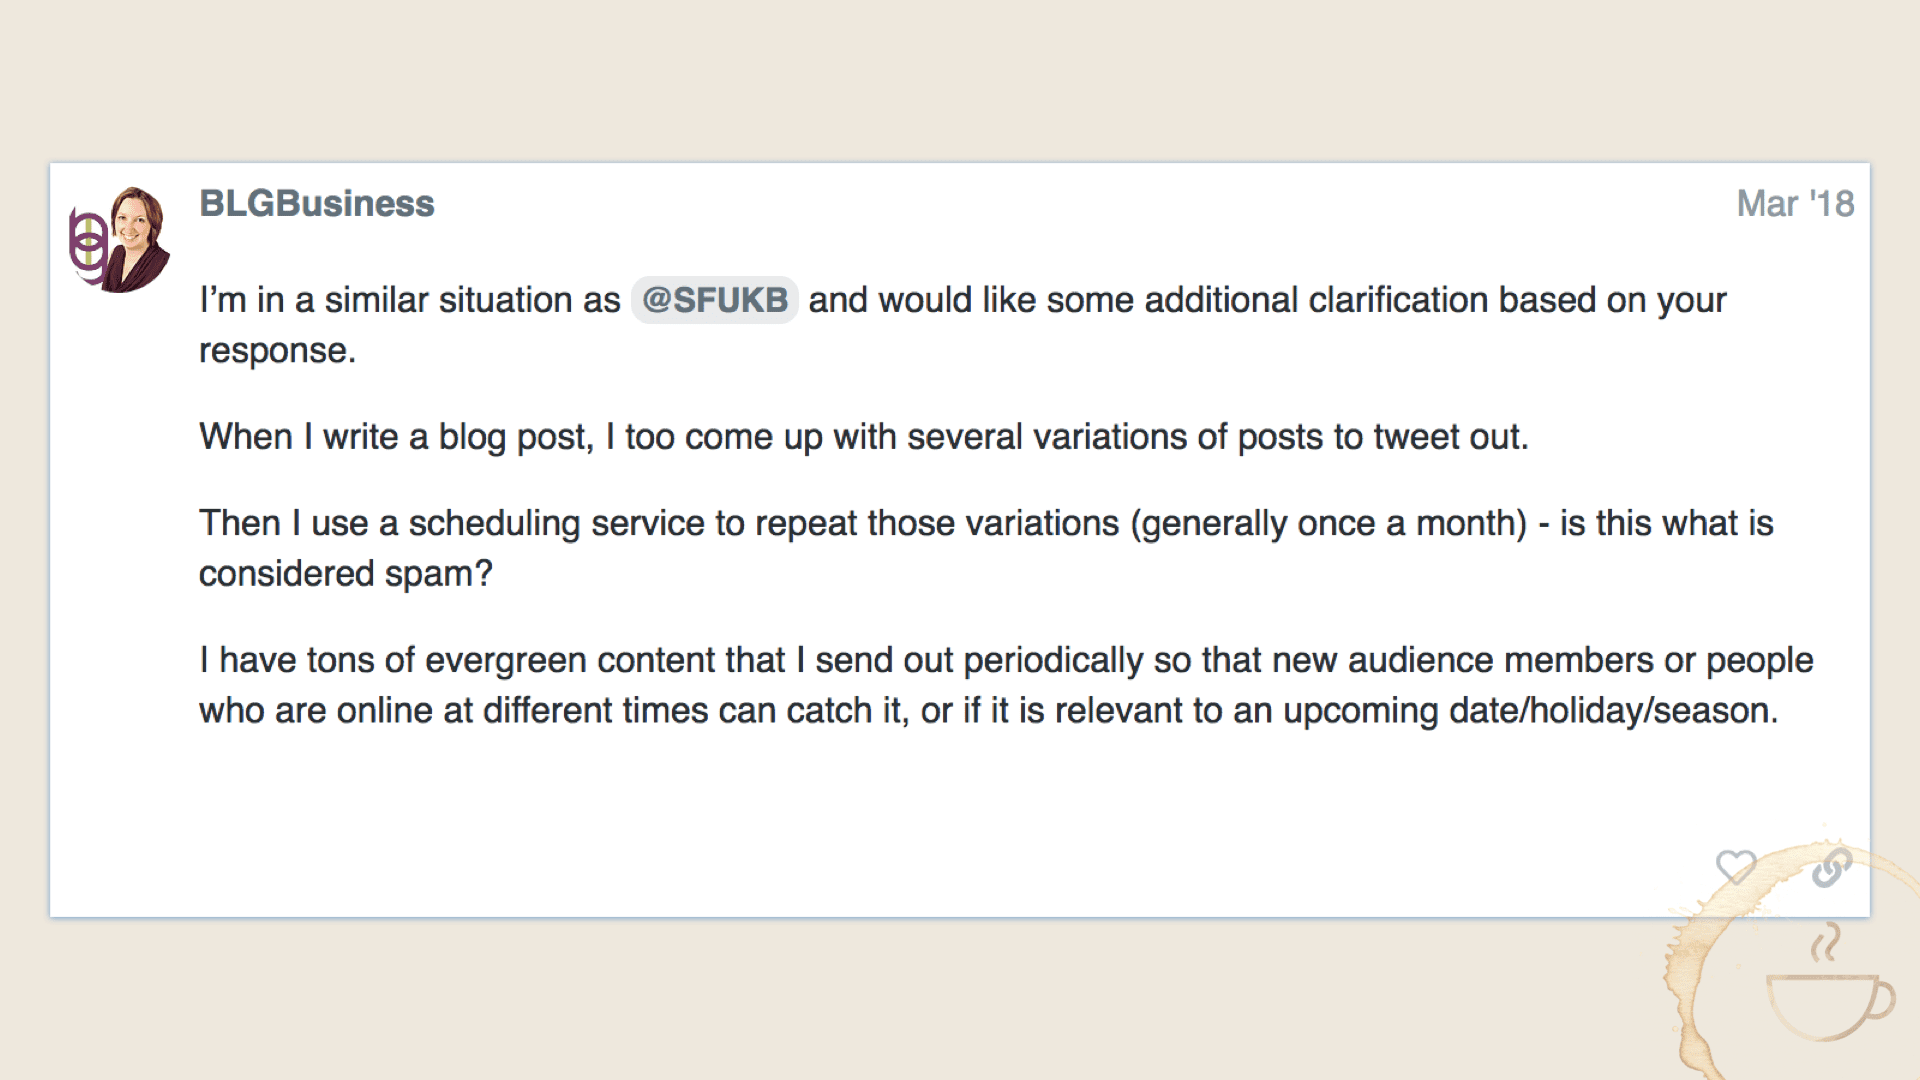 Clarification on Will tweeting links to my new blog posts get my Twitter account suspended, please?